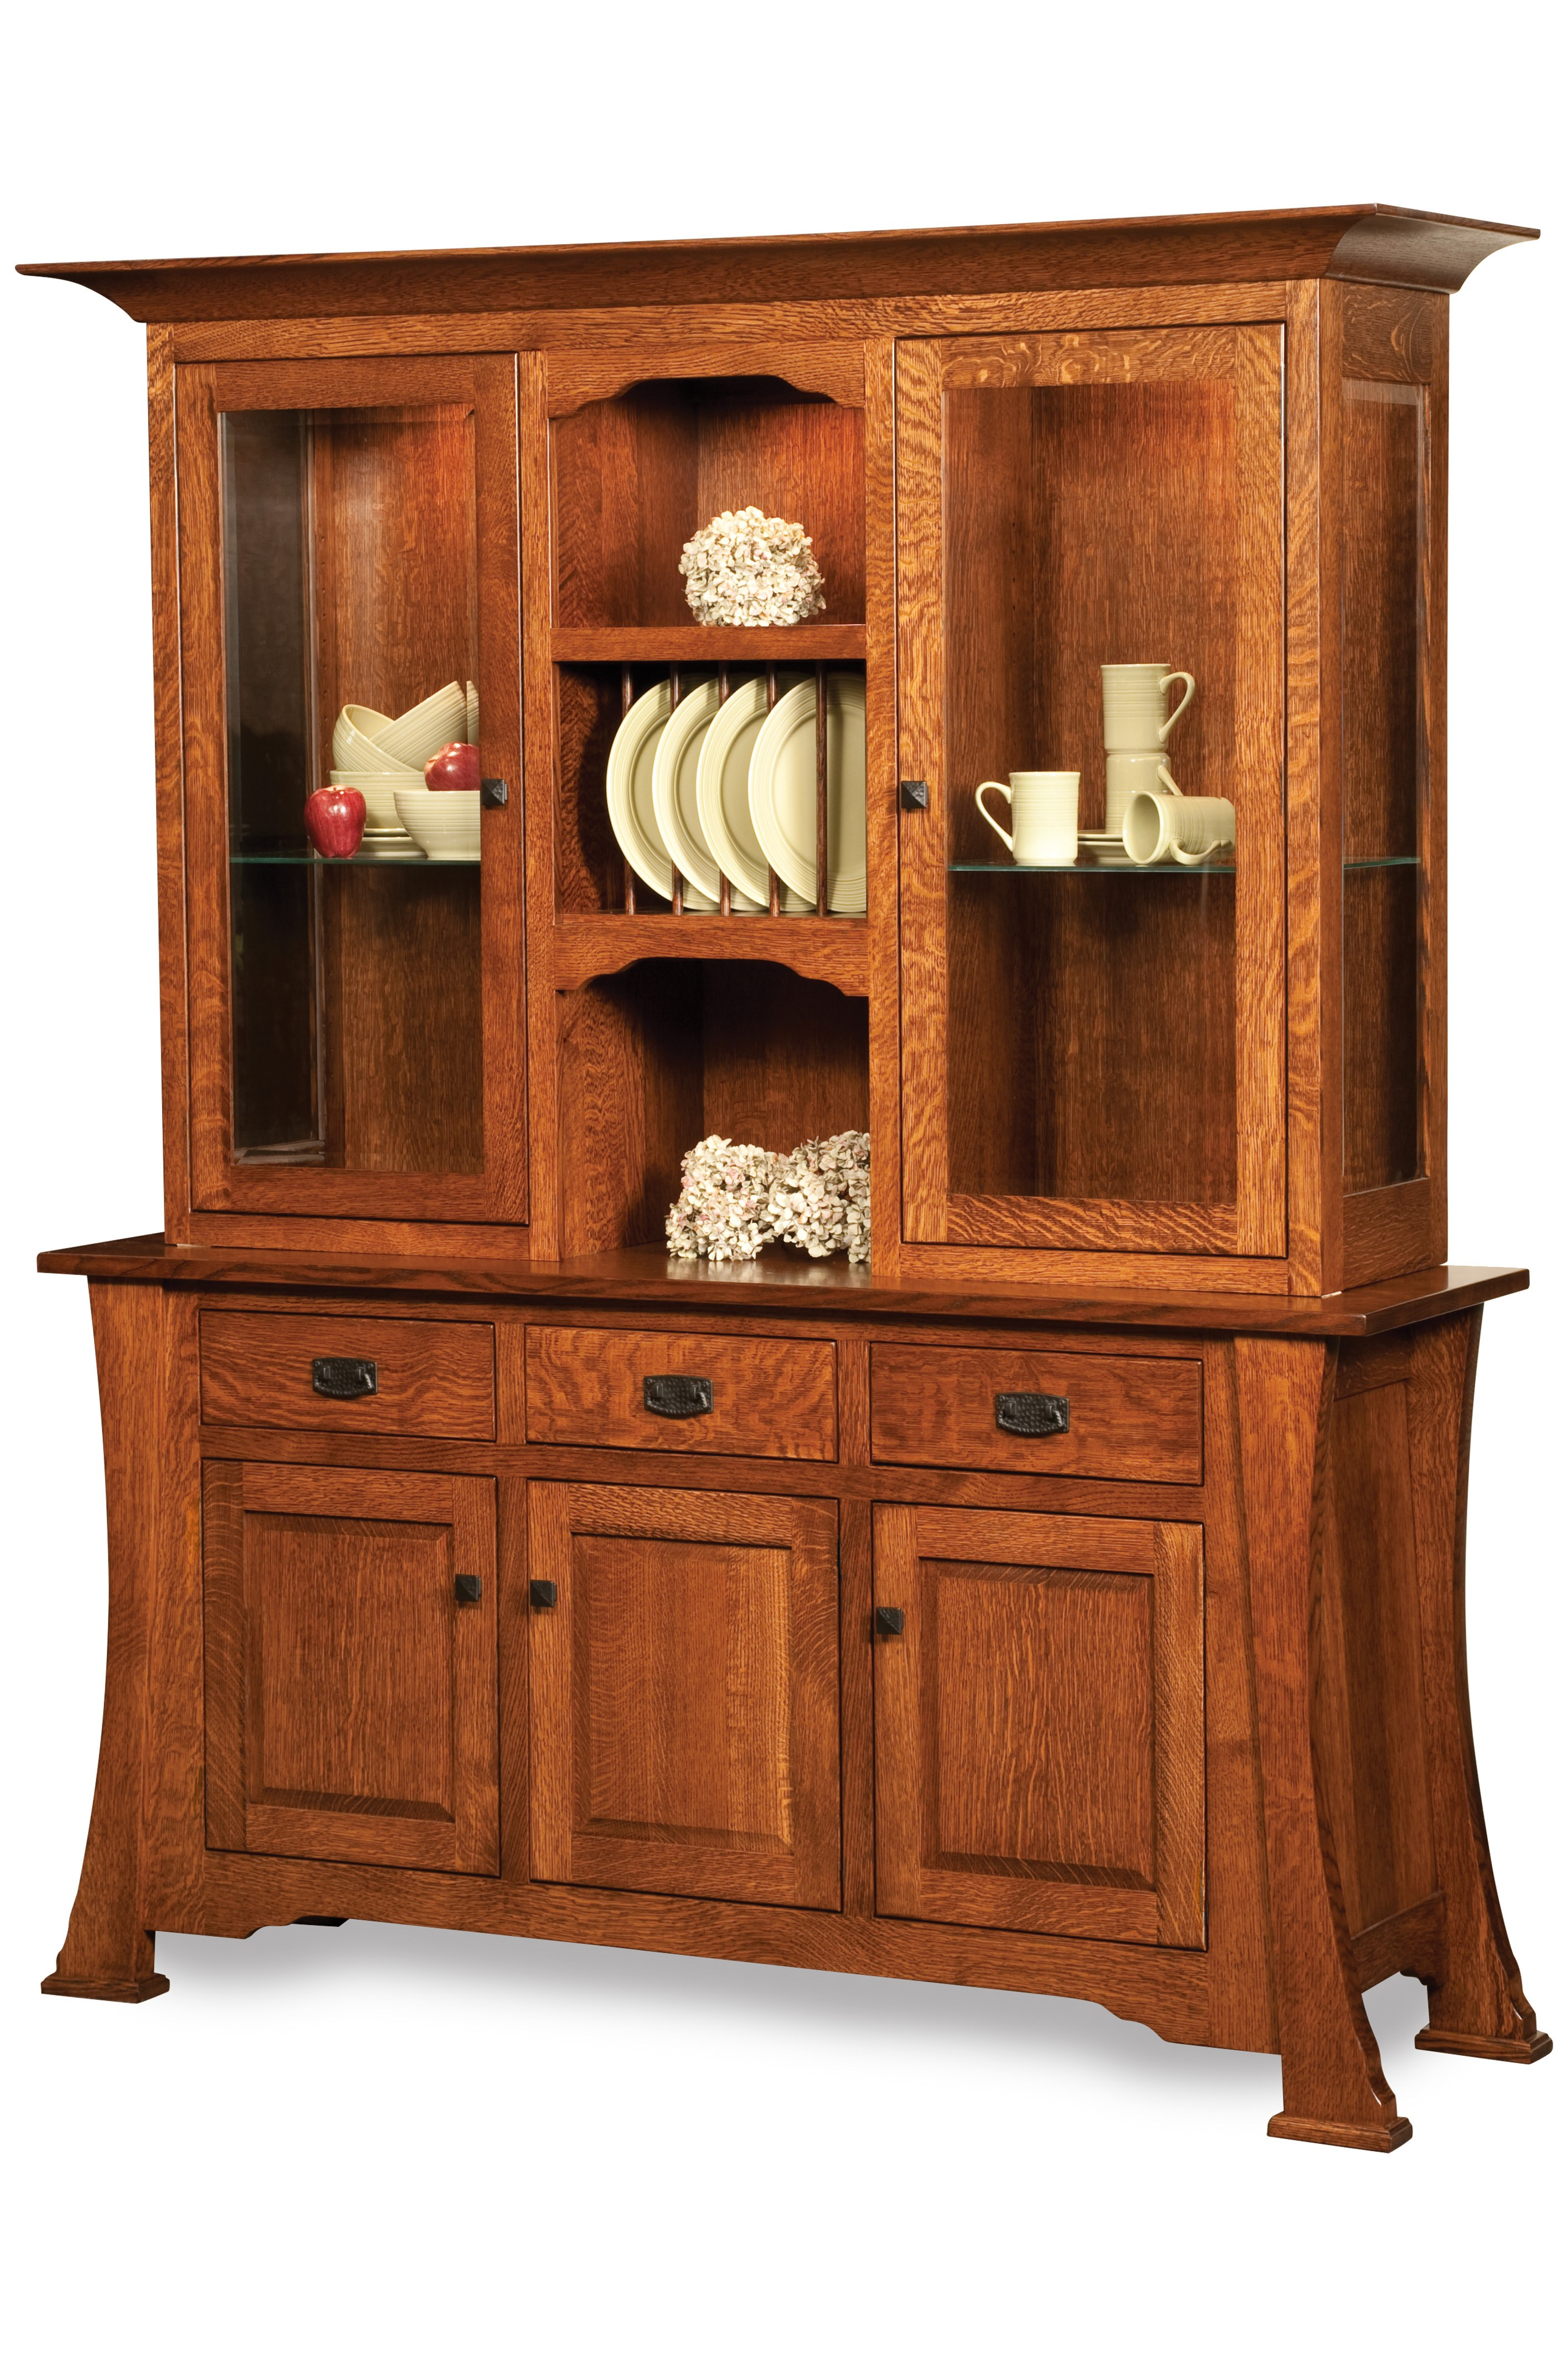 Cambridge Buffet And Hutch – Black Carriage Furniture Throughout 2 Shelf Buffets With Curved Legs (View 9 of 30)